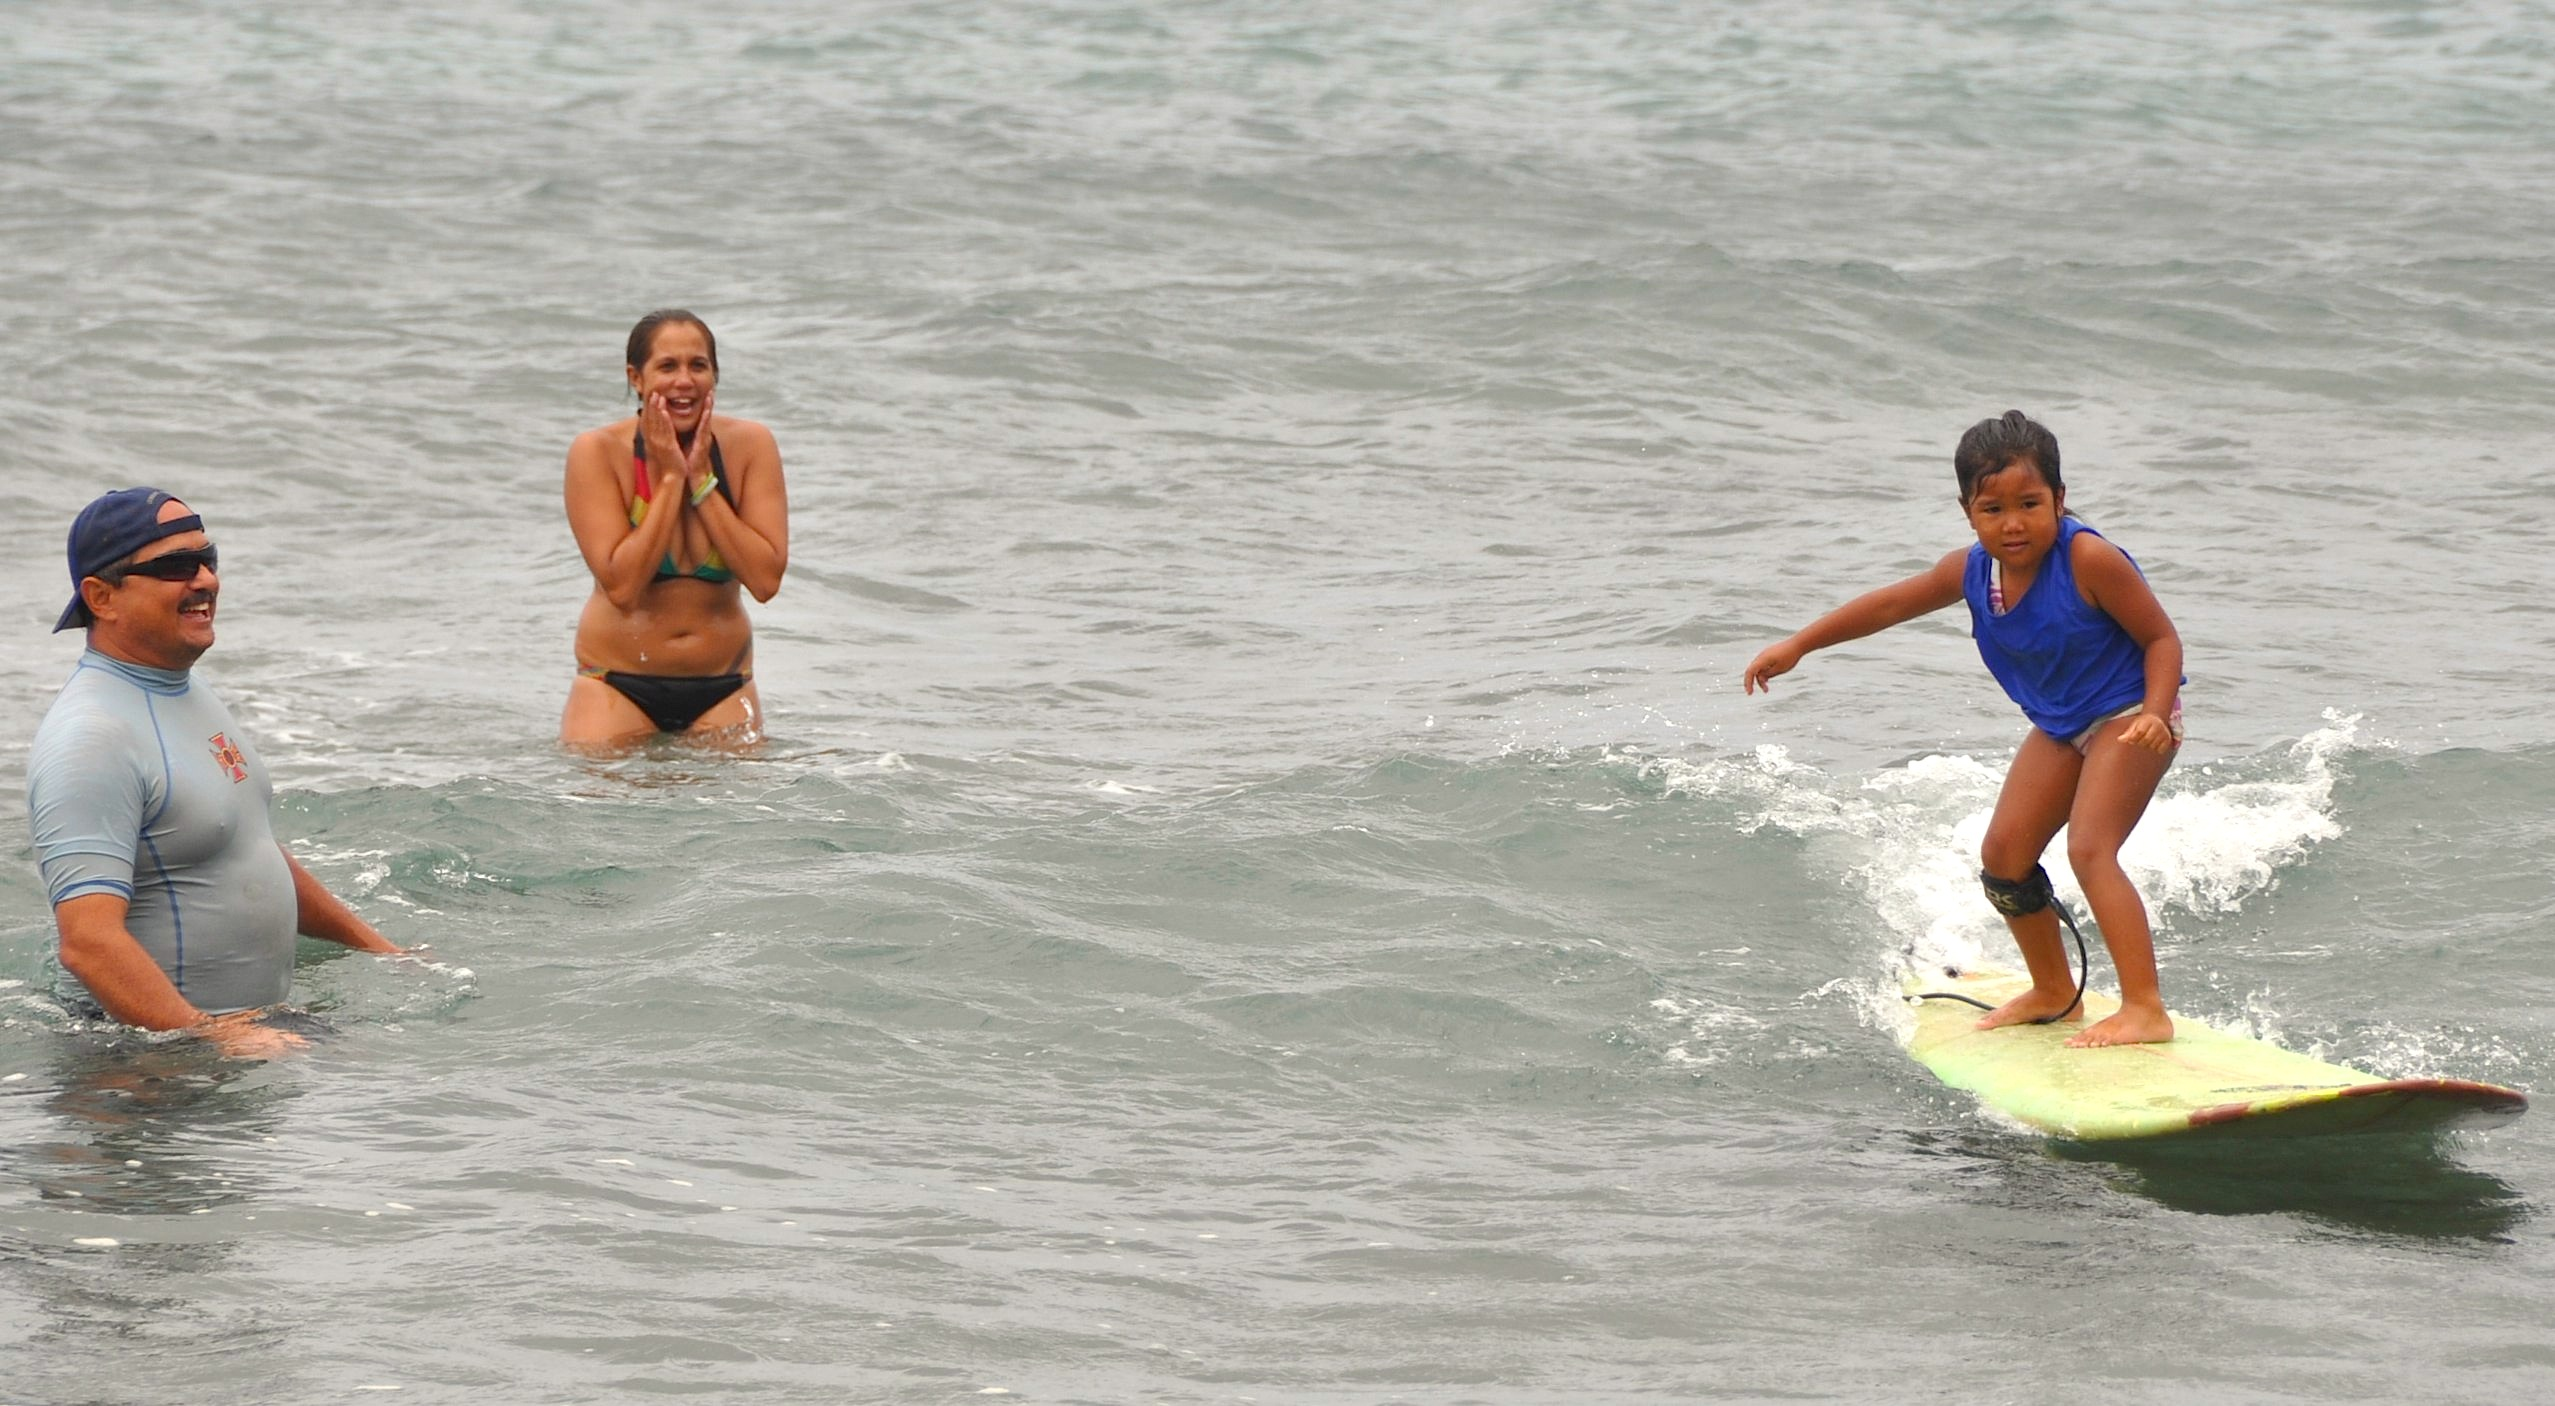 Ko Molokai Keiki O Ke Kai Summer Surf meet holds second event